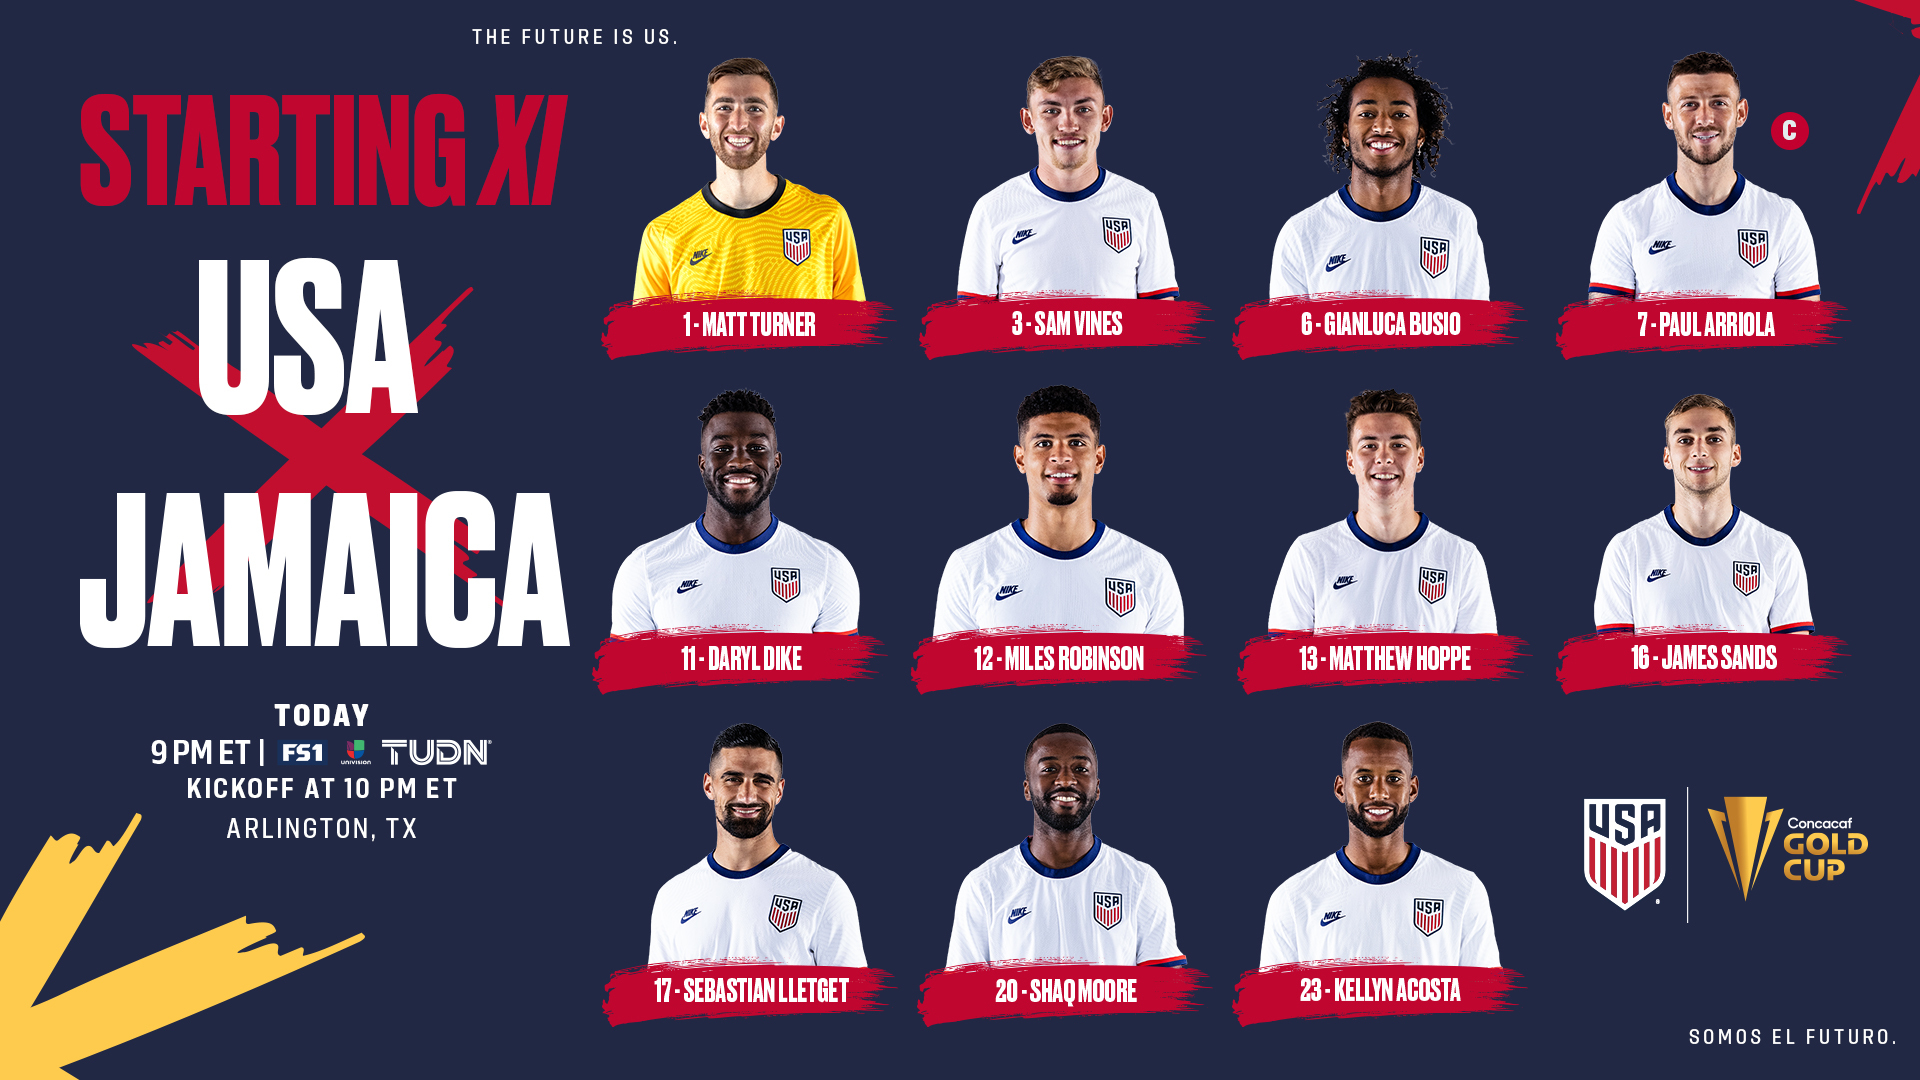 2021 Concacaf Gold Cup Quarterfinal: USA vs Jamaica - Starting XI, Lineup Notes, TV Channels & Start Time